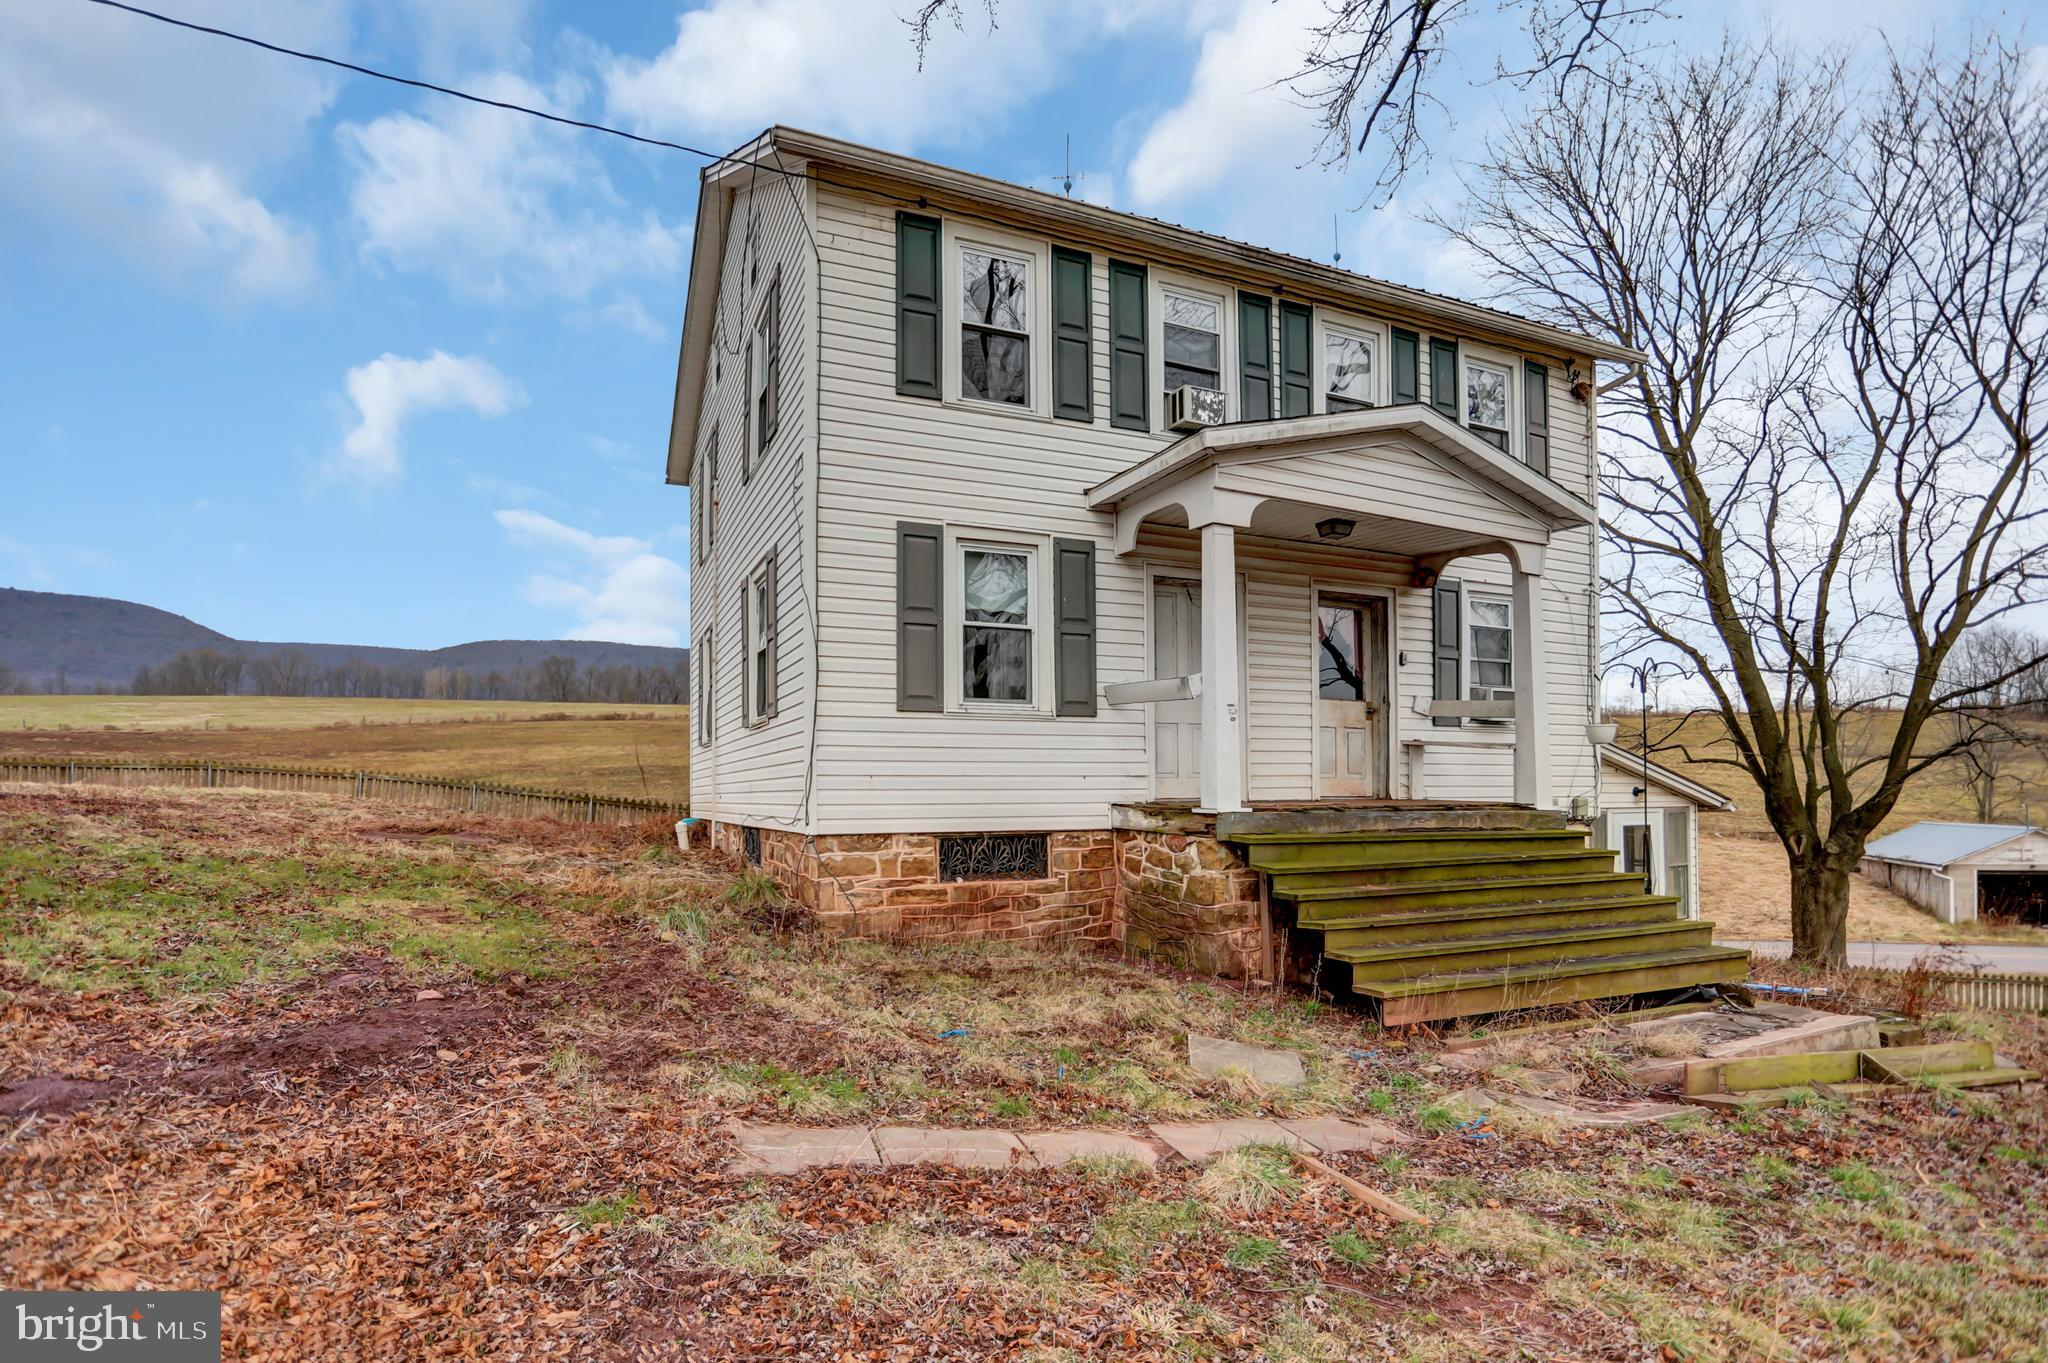 1824 RED BANK ROAD, MC ALISTERVILLE, PA 17049